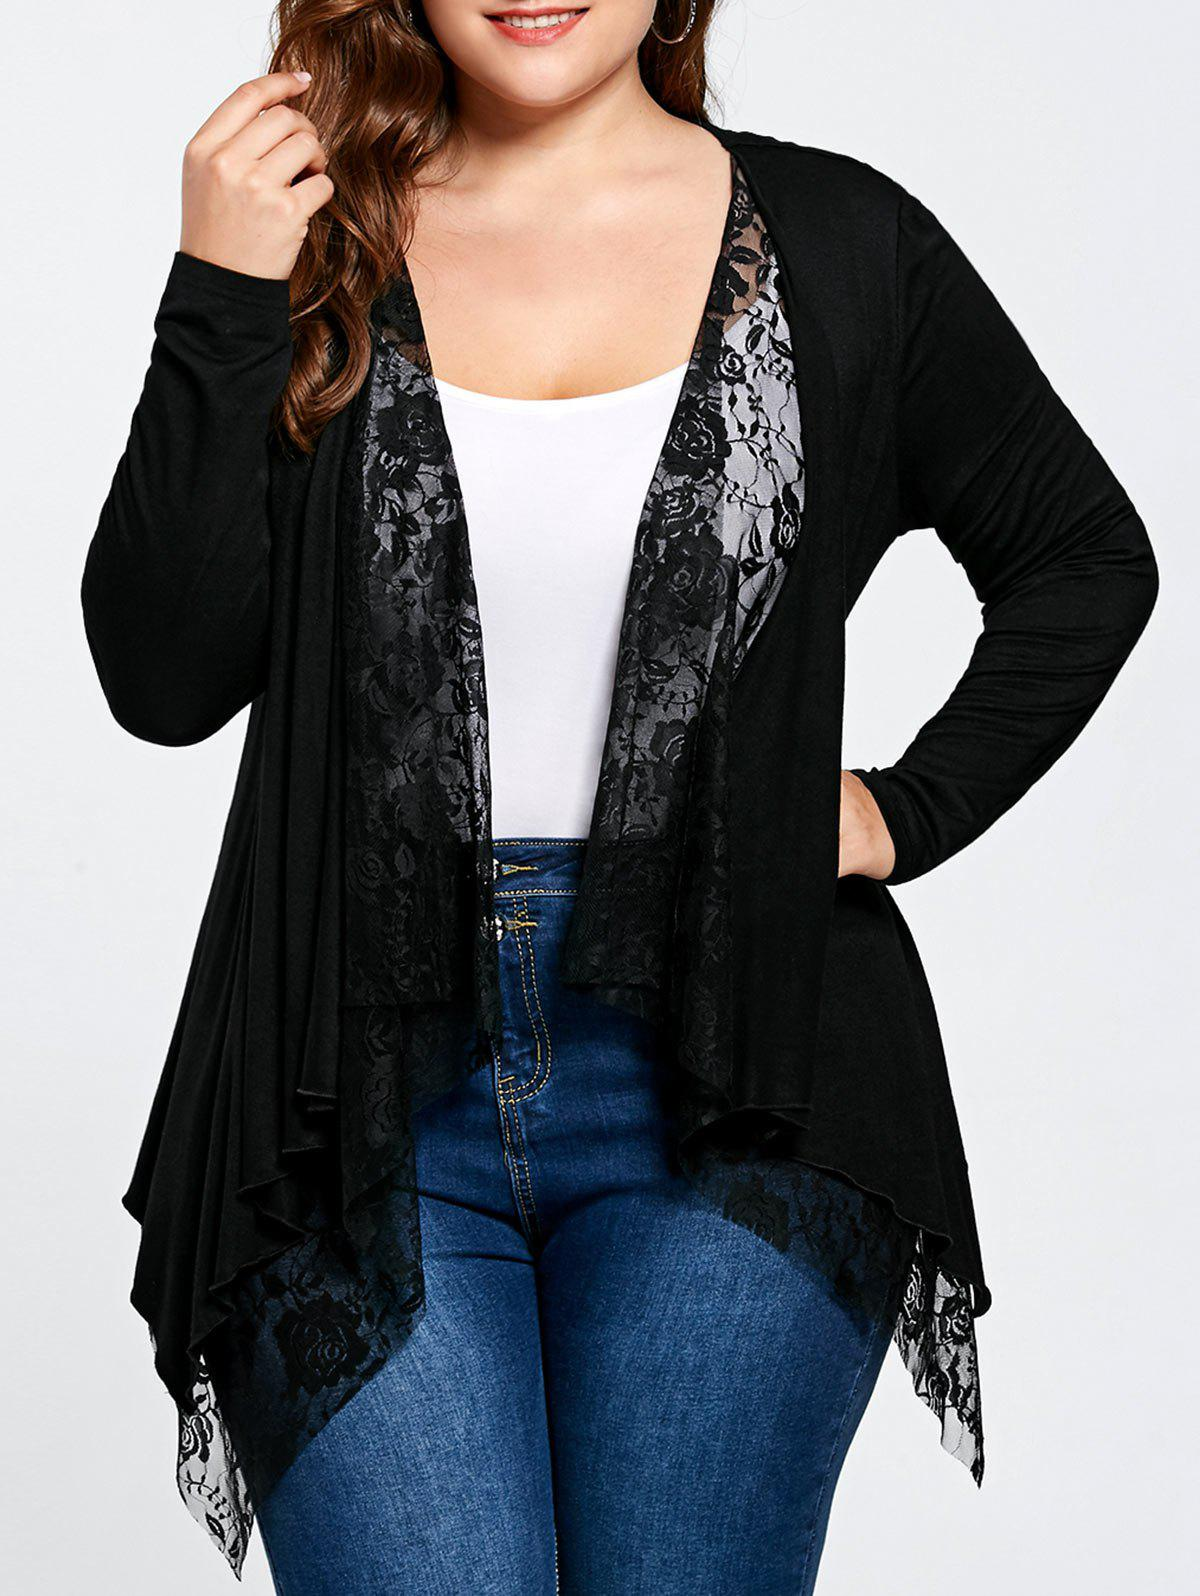 Plus Size Lace Trim Open Front CardiganWOMEN<br><br>Size: 5XL; Color: BLACK; Type: Cardigans; Material: Rayon,Spandex; Sleeve Length: Full; Collar: Collarless; Style: Fashion; Season: Fall,Spring,Summer; Pattern Type: Solid; Weight: 0.3400kg; Package Contents: 1 x Cardigan;